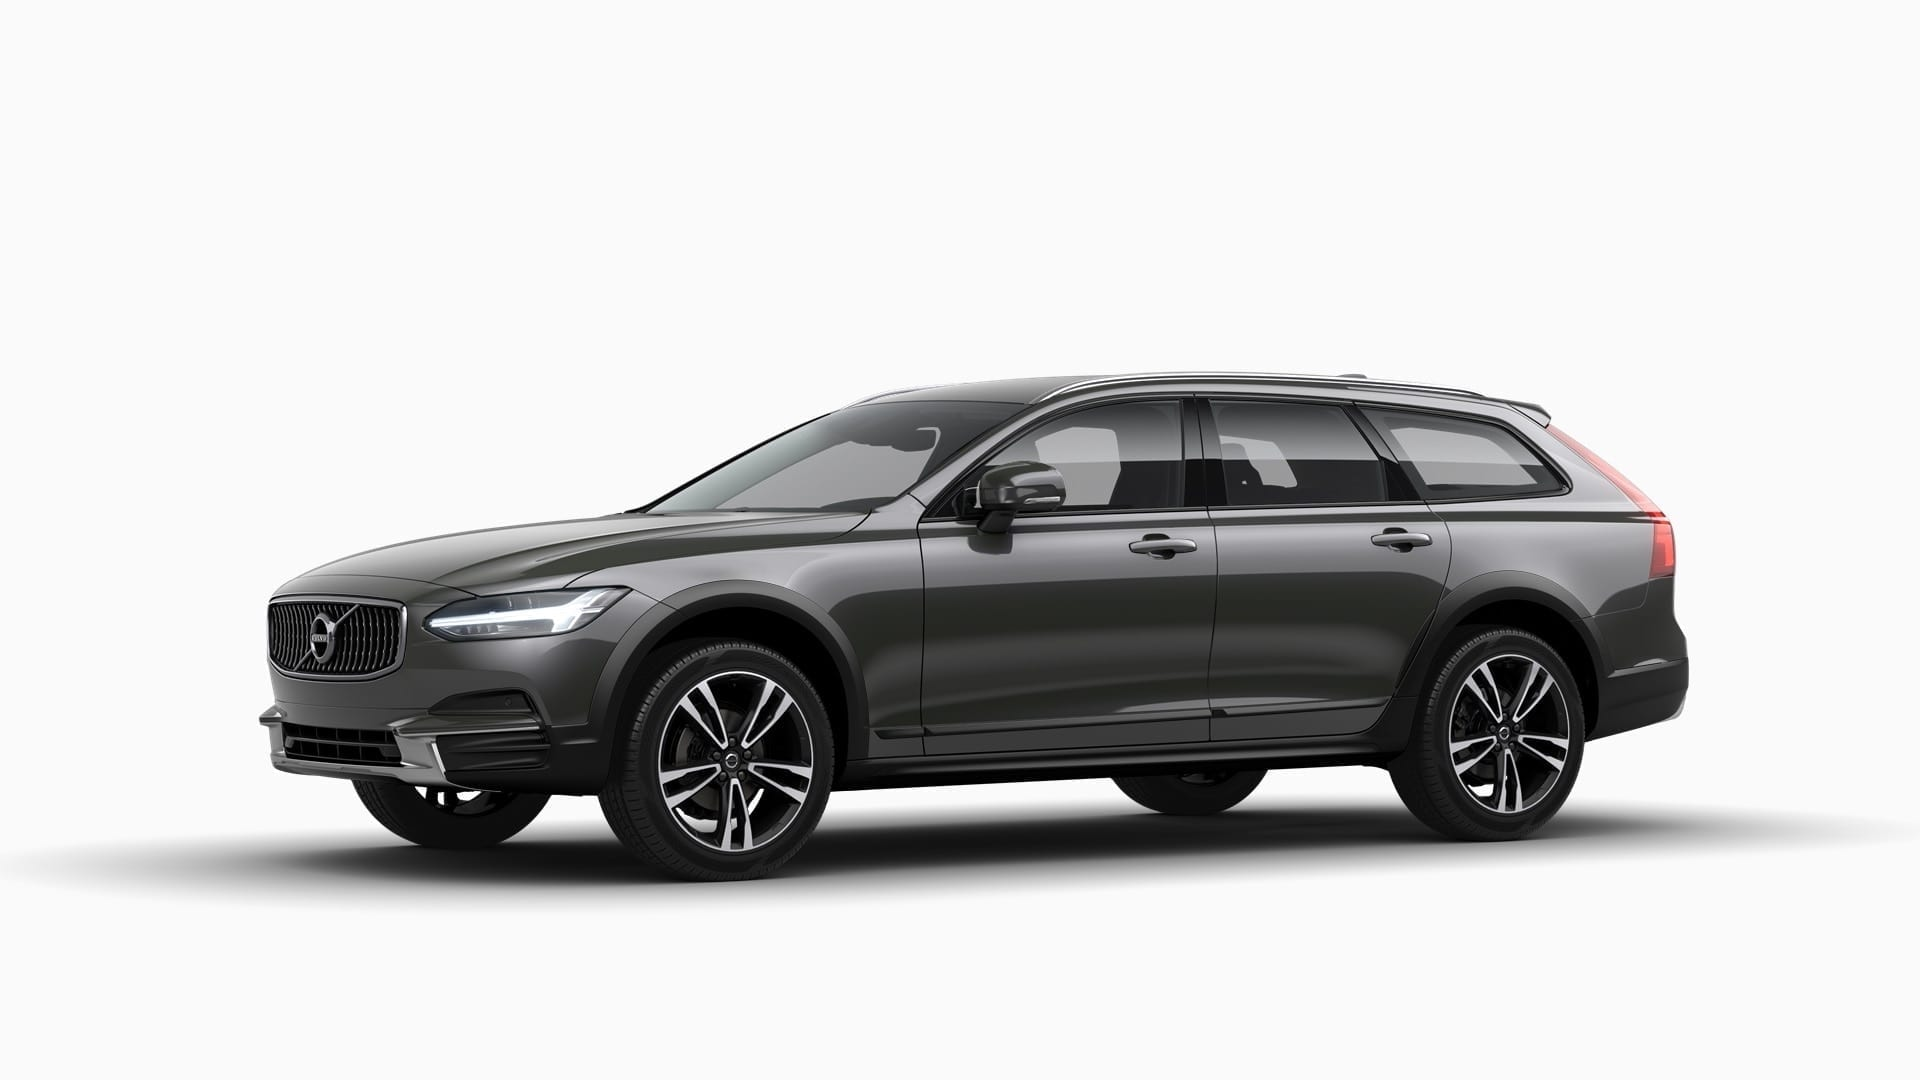 VOLVO V90 Сross Сountry Inscription Top фото 1